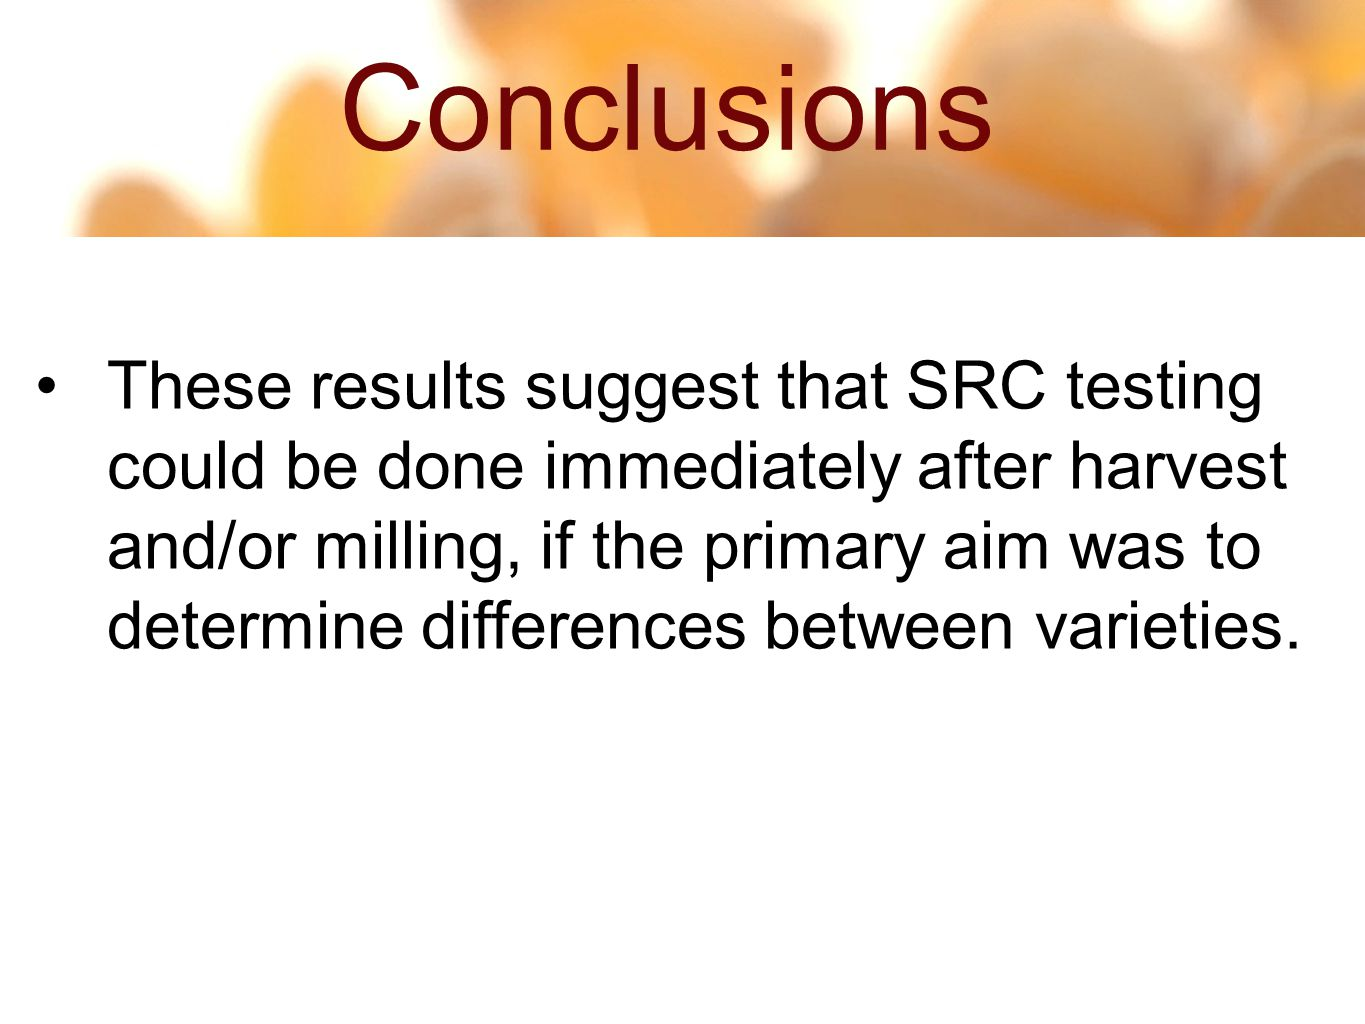 Conclusions 14 48 These results suggest that SRC testing could be done immediately after harvest and/or milling, if the primary aim was to determine differences between varieties.